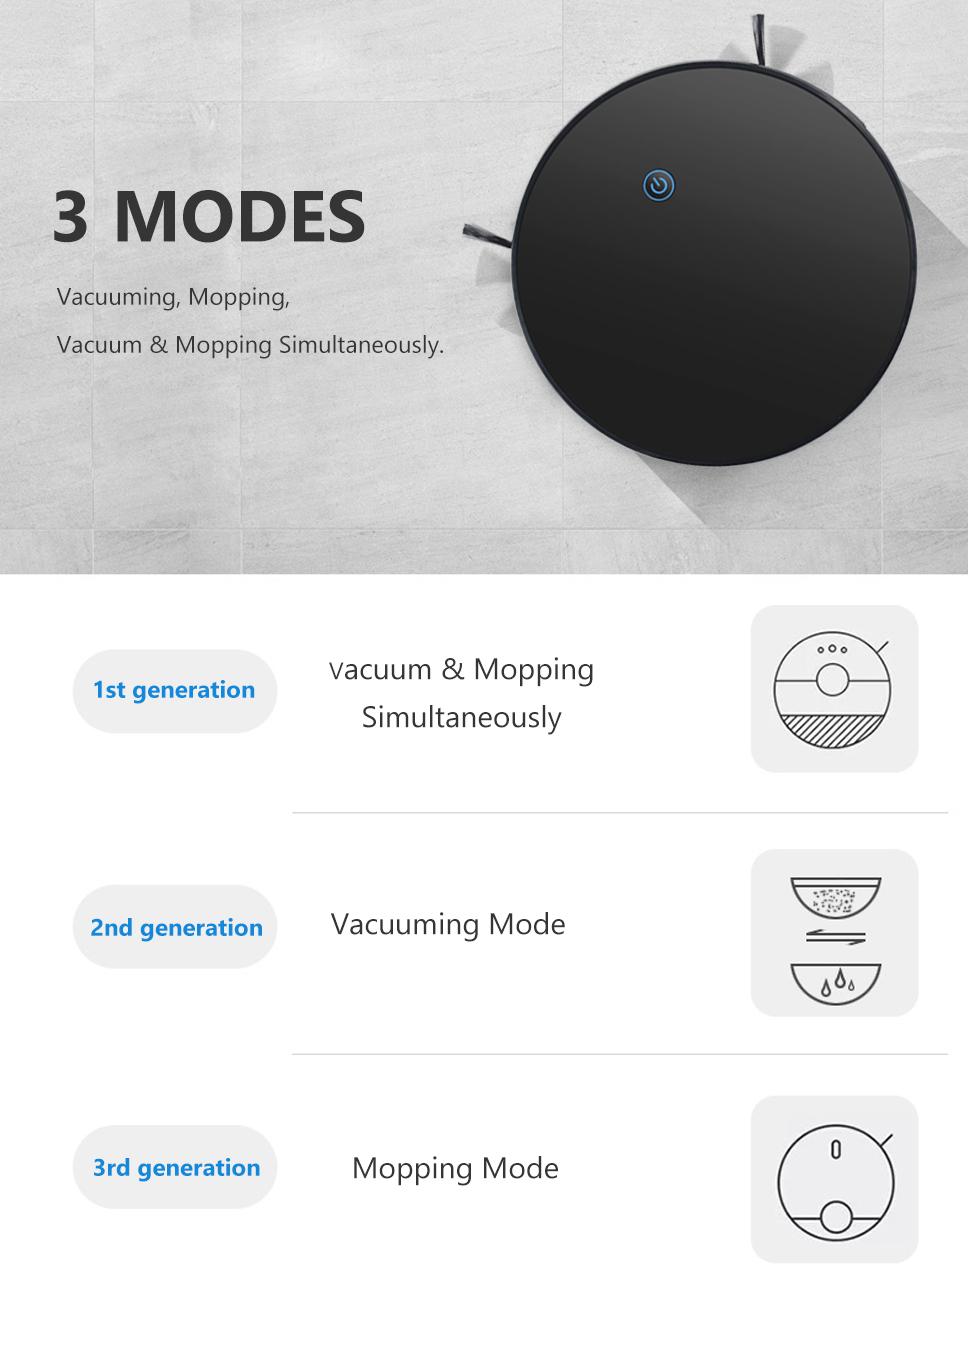 Hbf57c8fa23234e298c25ef393e17ab48l Home Intelligent Sweeping Robot App Remote Control Wireless Vacuum Cleaner Smart Wiping Machine Automatic Refill Floor Cleaner